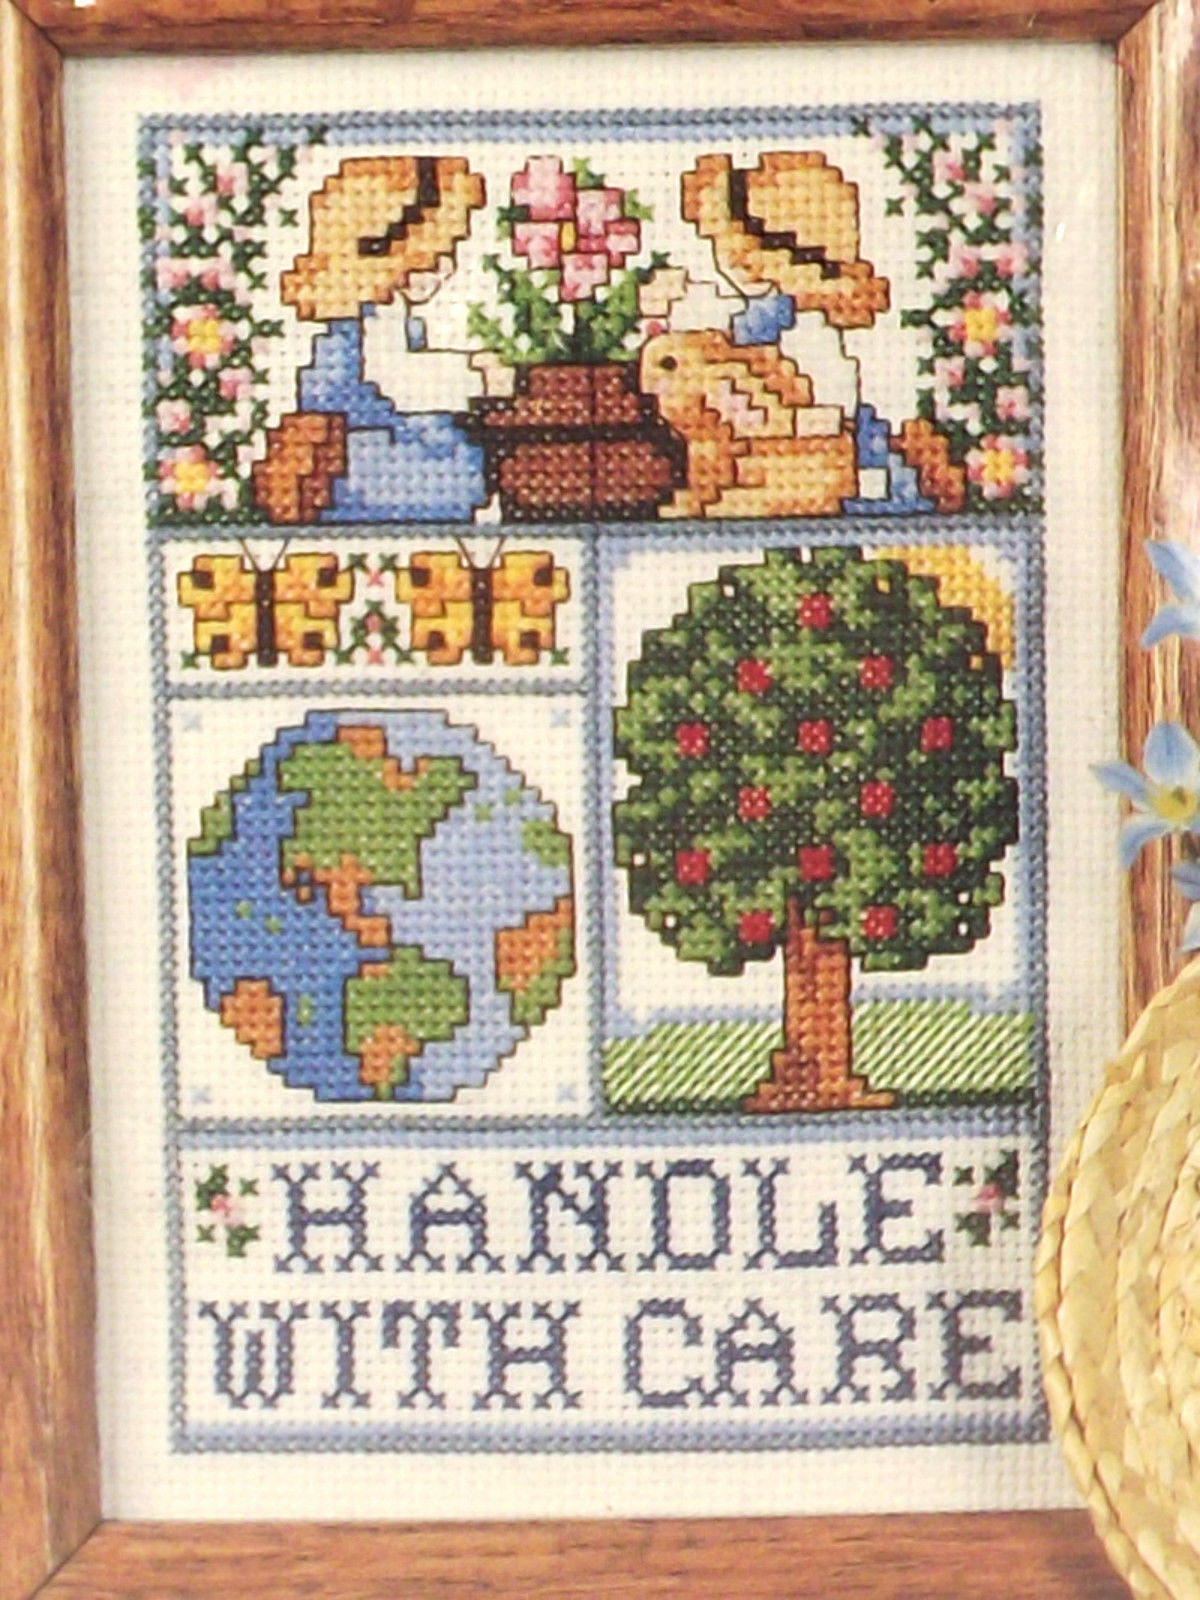 Bucilla Counted Cross Stitch Kit Handle With Care Gallery of Stitches J. Elliott